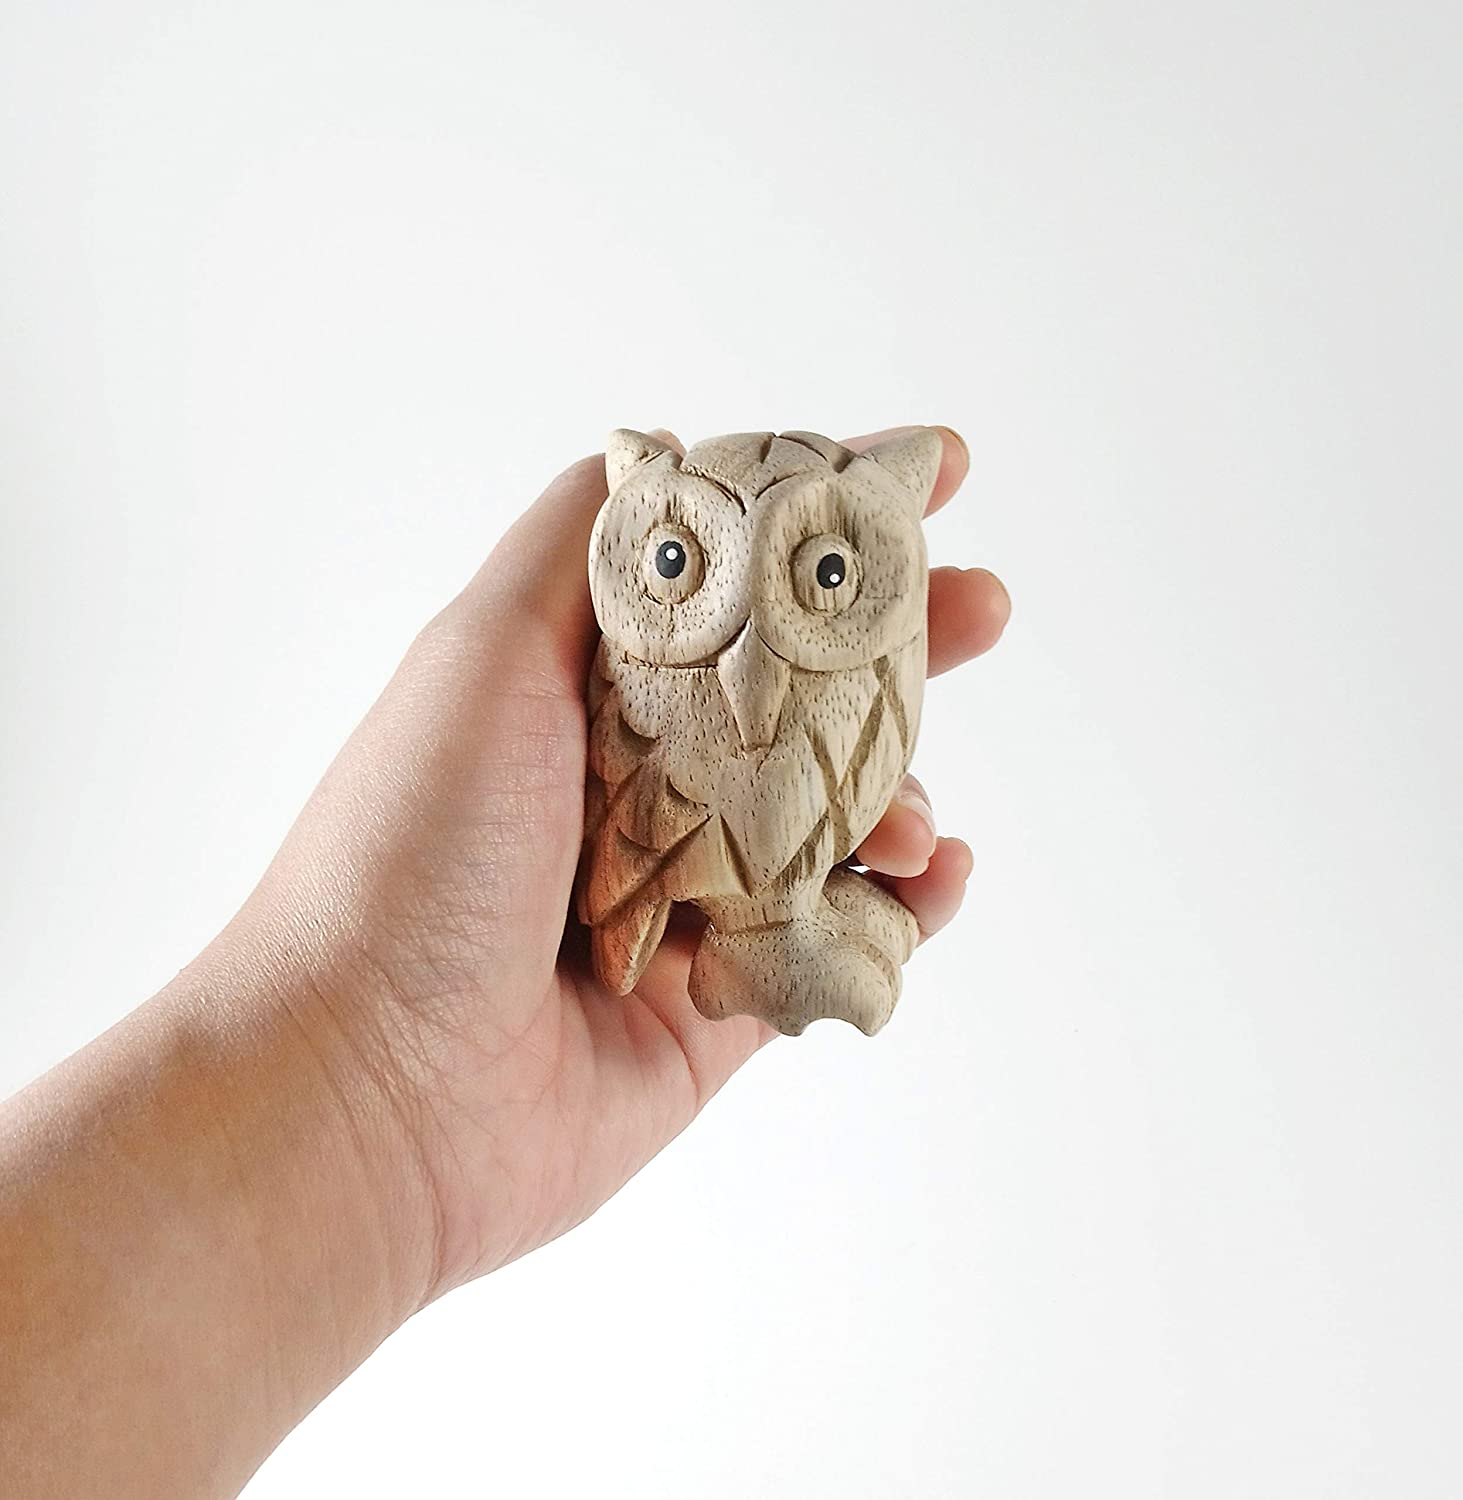 Animal Doll Figurine Thai Arts /& Creations 1 pc 4 inches Collectibles Decor Modern Handmade Natural Unfinished Wooden Carved Owl